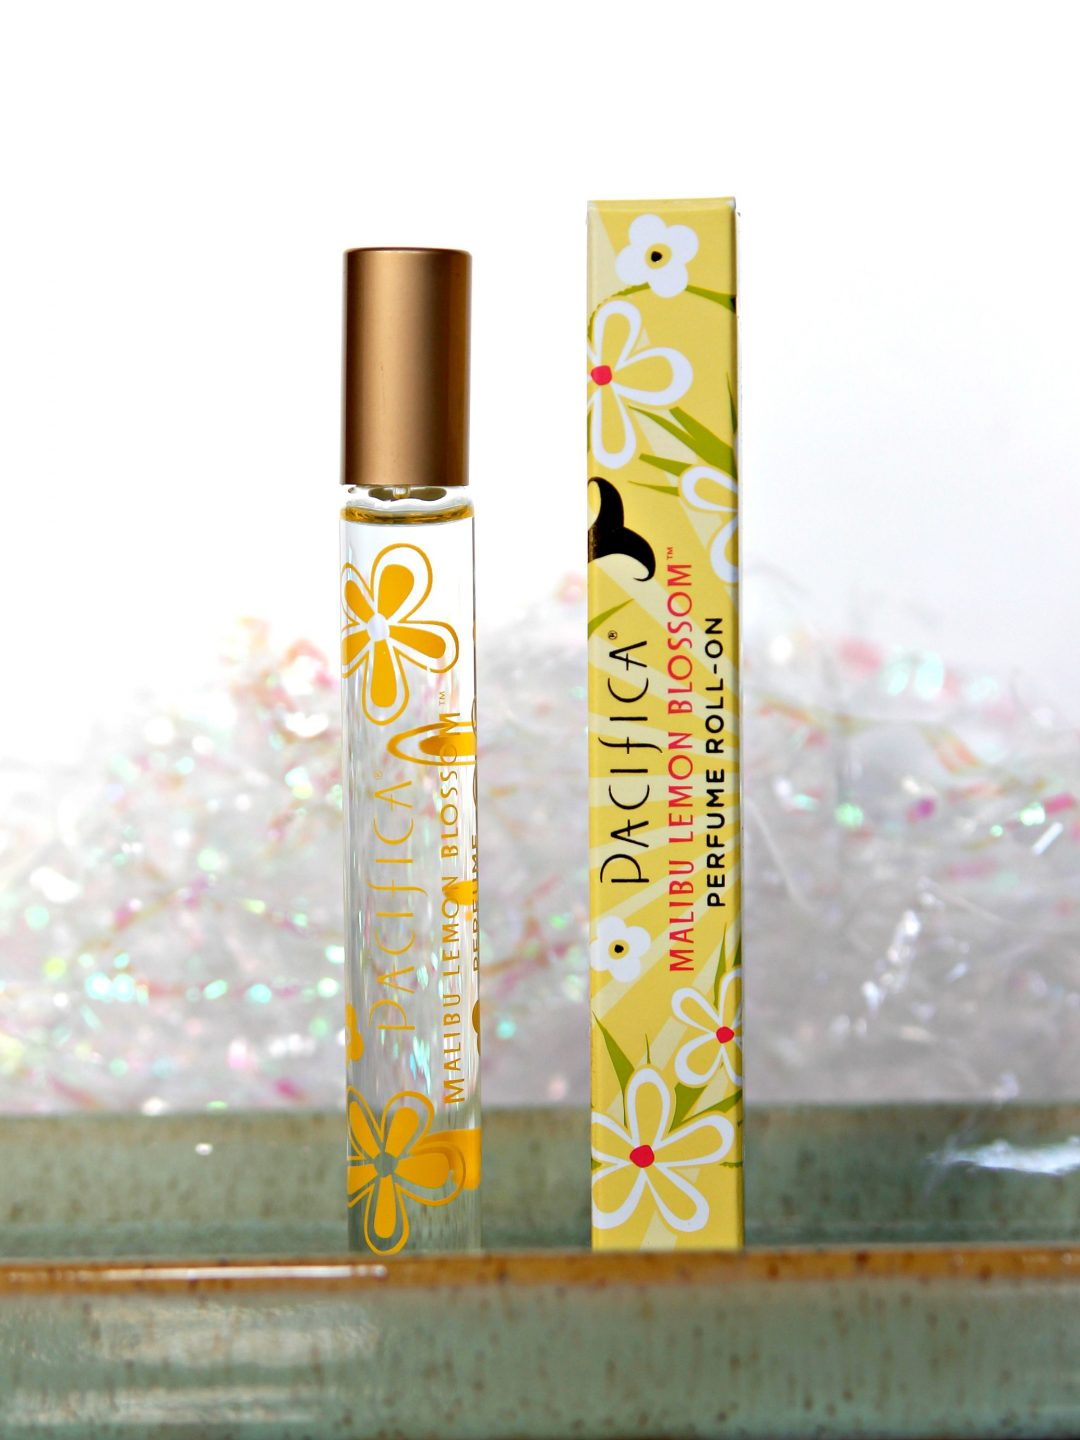 Pacifica Malibu Lemon Blossom Roll-On Parfum